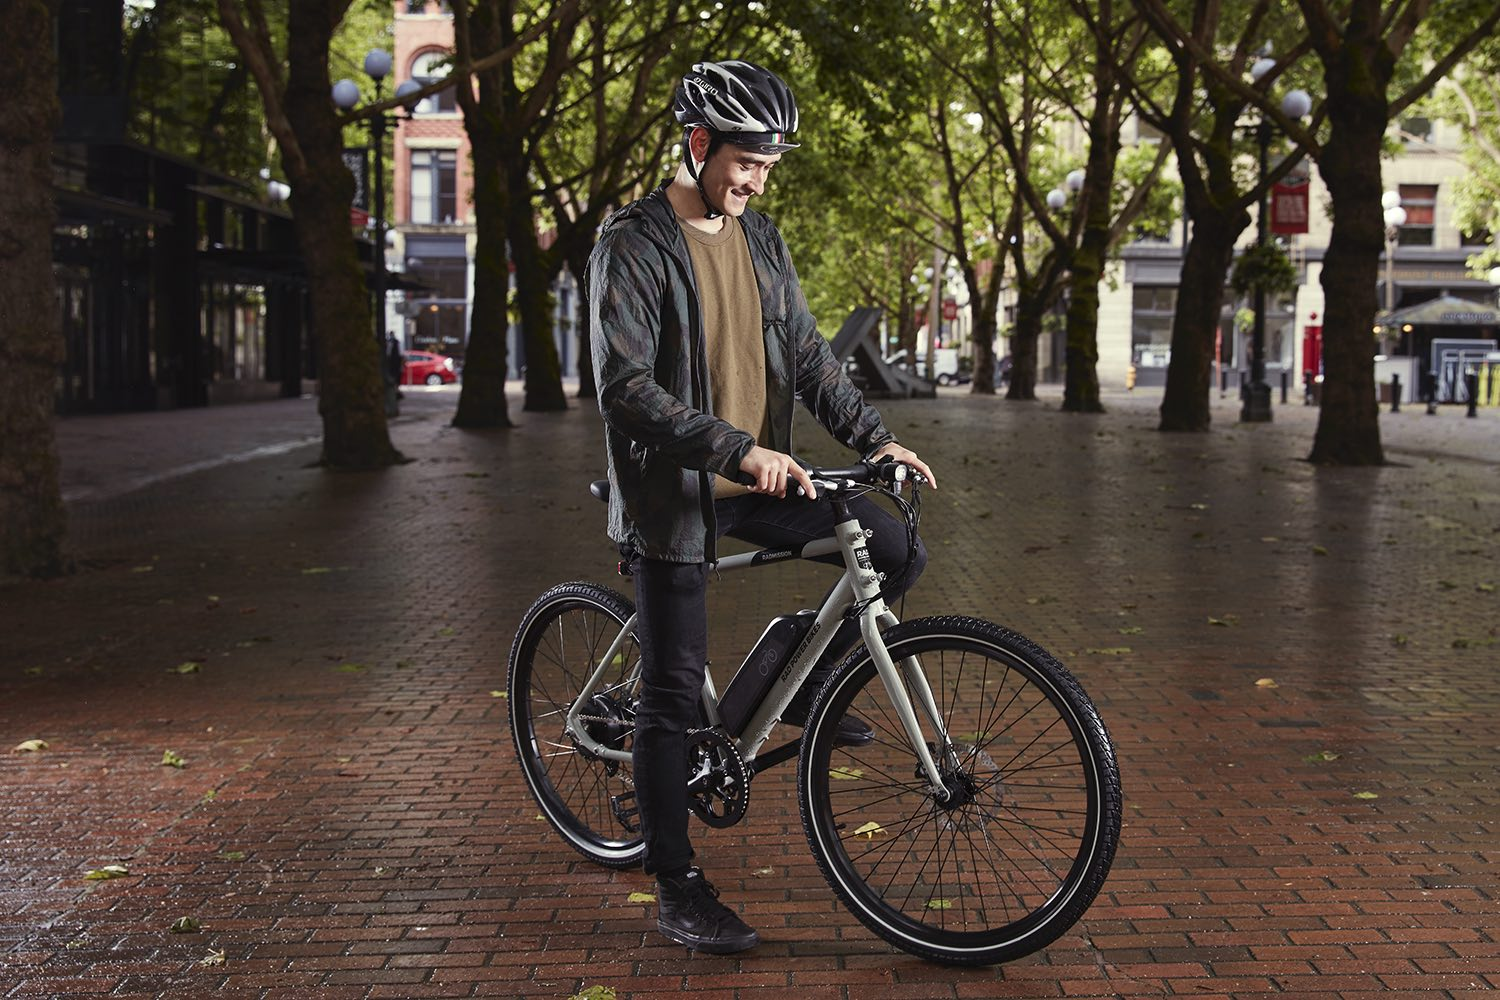 A man pauses in a plaza to admire his RadMission electric bike.